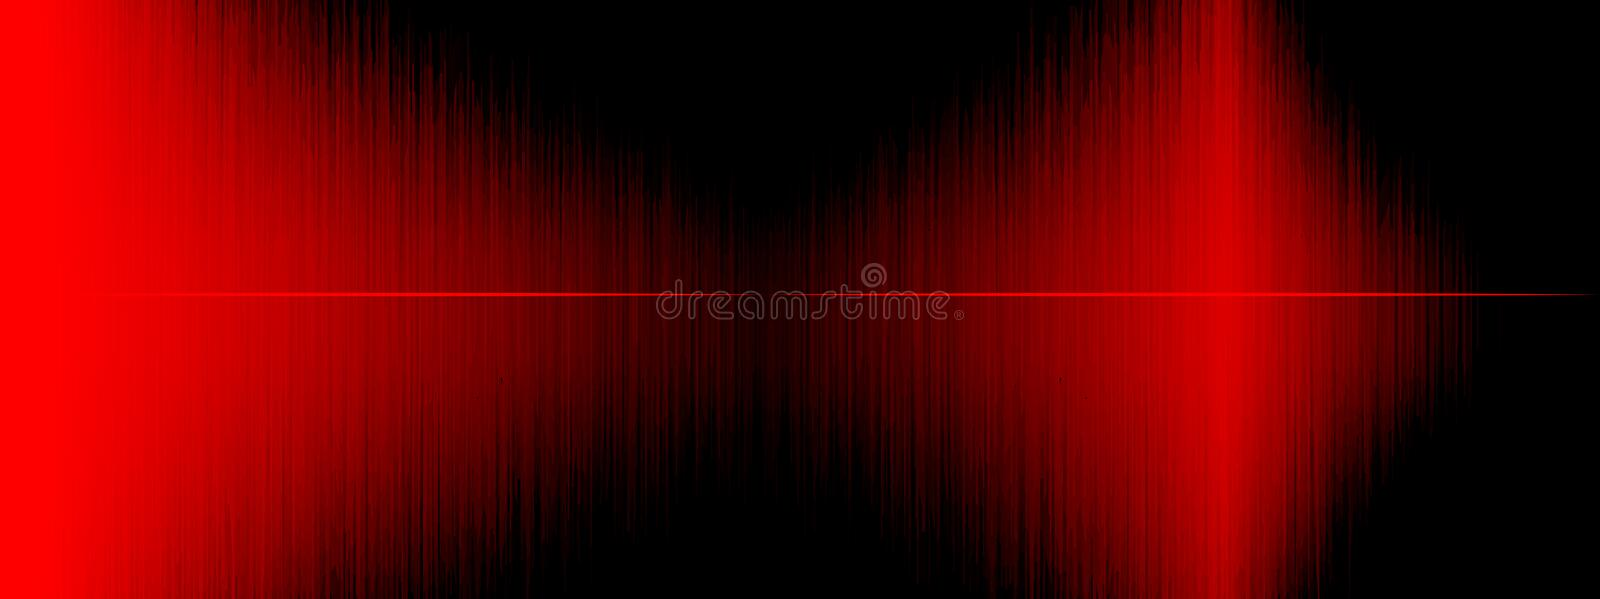 Equalizer, Sound wave , wave frequencies, light abstract background, Bright, laser. Red Sound waves oscillating. Abstract music stock illustration